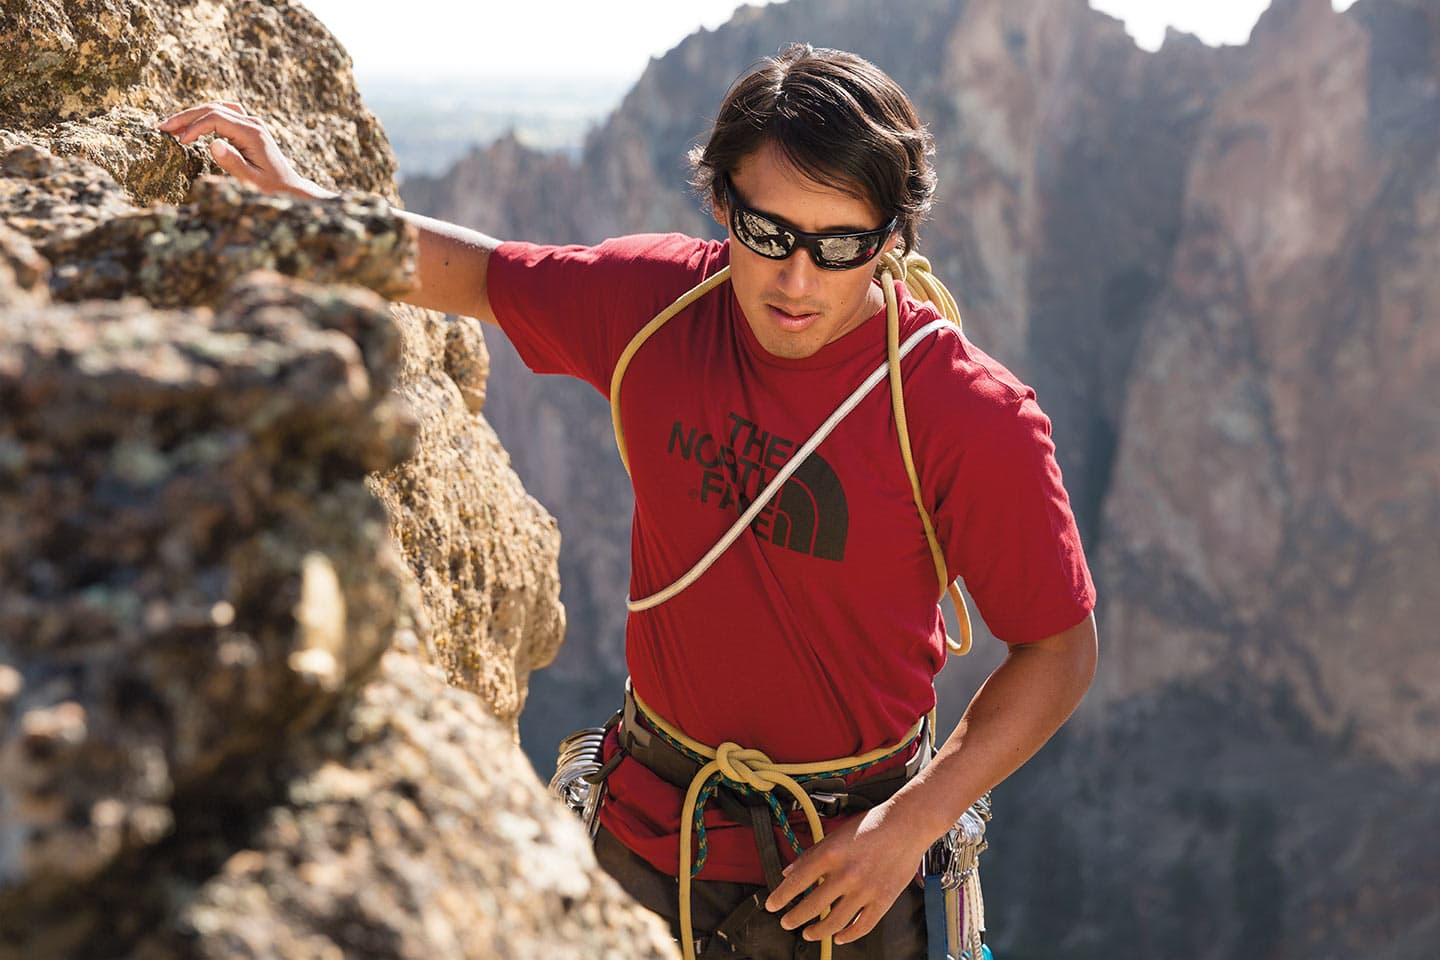 Climber NorthFace Apparel Red Shirt Sunglasses Close Up Shot